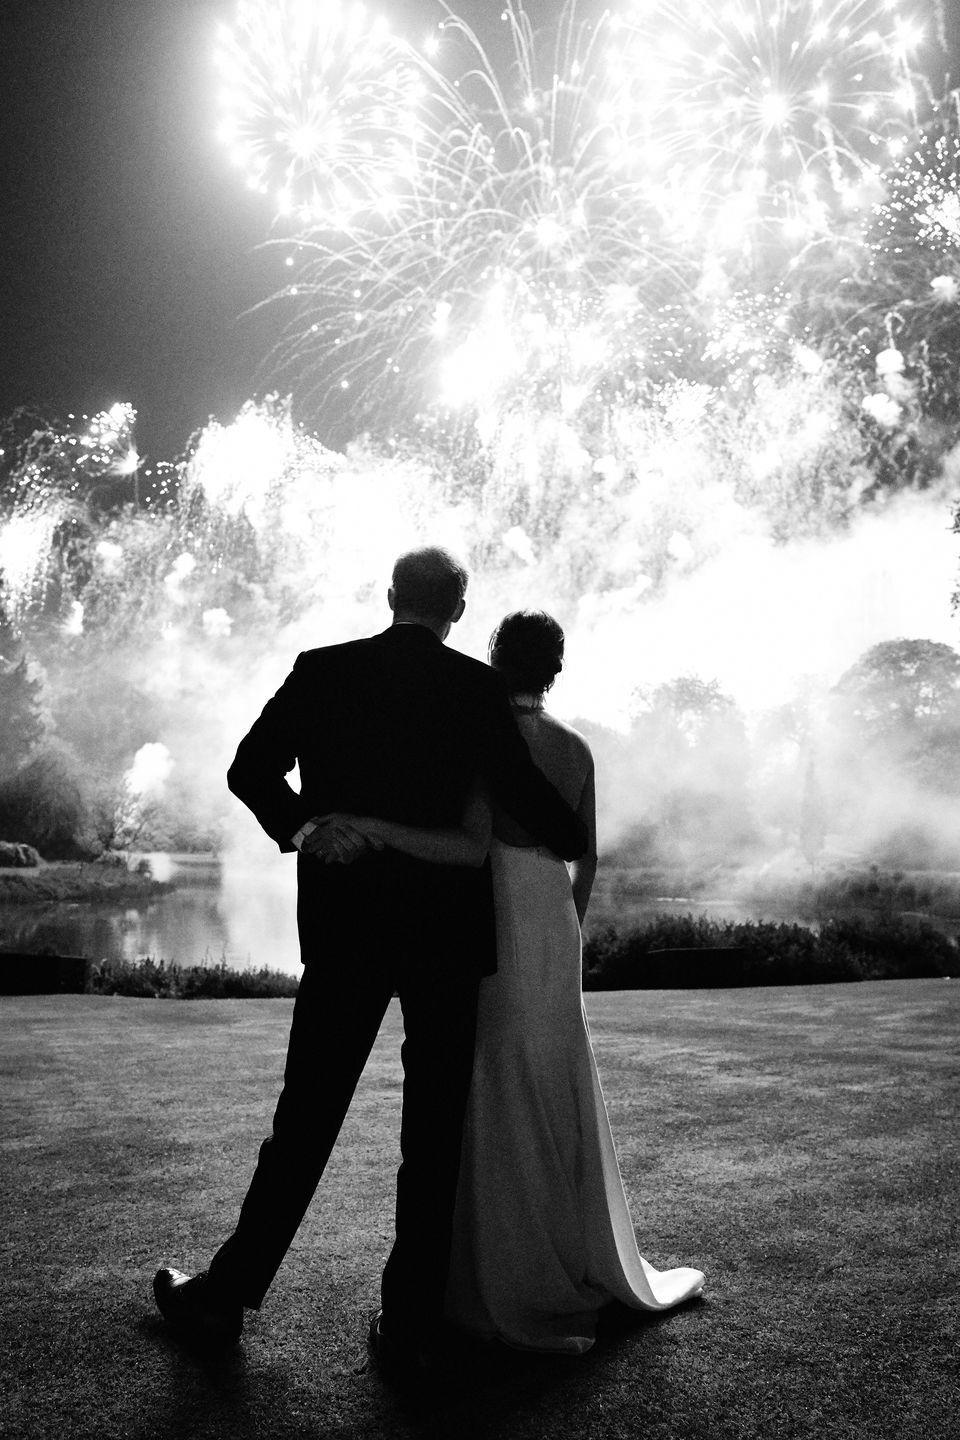 "<p>The Duke and Duchess of Sussex capped off an exciting year by sharing <a href=""https://www.townandcountrymag.com/society/tradition/a25584157/prince-harry-meghan-markle-frogmore-house-christmas-card-2018/"" rel=""nofollow noopener"" target=""_blank"" data-ylk=""slk:an intimate black and white photograph from their wedding celebration as their 2018 Christmas Card"" class=""link rapid-noclick-resp"">an intimate black and white photograph from their wedding celebration as their 2018 Christmas Card</a>. The heart-warming shot features the couple embracing at their wedding reception at Frogmore House while watching fireworks— and features Meghan's now iconic white Stella McCartney wedding dress. </p>"